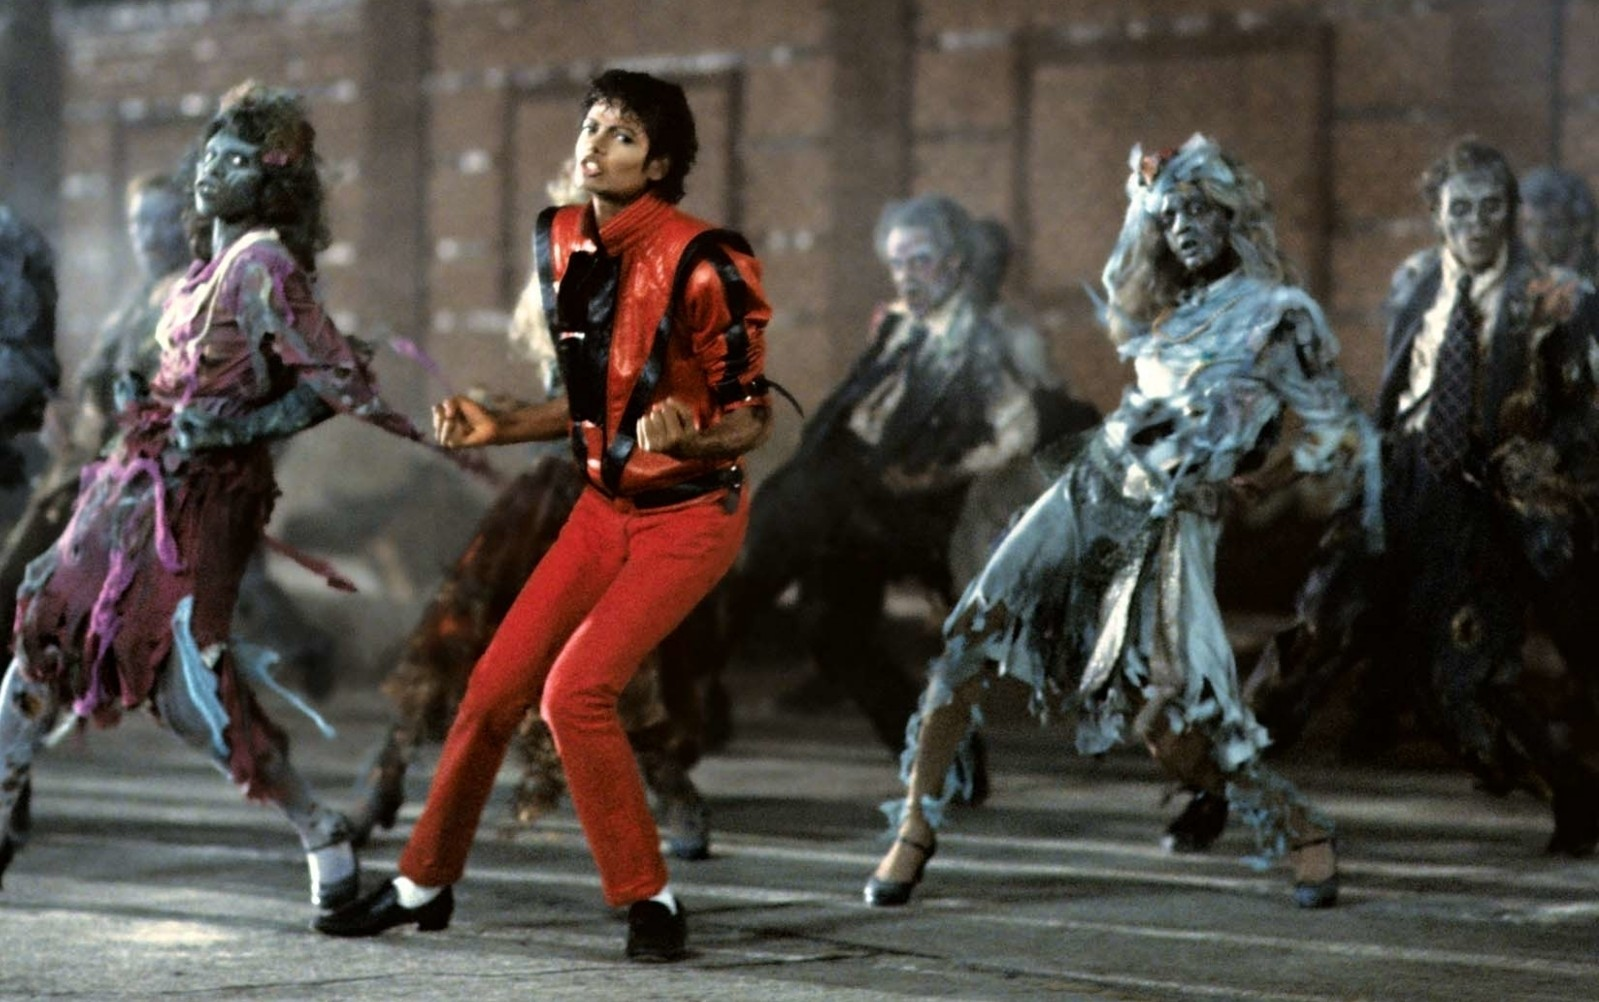 Michael Jackson attorniato dagli zombies in un momento del video di 'Thriller', di John Landis. Il filmato trae ispirazione dal film 'Un lupo mannaro americano a Londra' dello stesso Landis, la risata finale appartiene invece a Vincent Price, icona del cinema horror americano anni '50. Cult Stories Michael Jackson Thriller King of pop music video zombies dance cult stories cultstories cinema cult story cultstory art culture music ipse dixit aneddoti citazioni frasi famose aforismi immagini foto personaggi cultura musica storie facts fatti celebrità vip cult spettacoli live performance concerto photo photography celebrity giornalismo scrittura libri genio pop icon attore cantante solista pittrice scultore attrice star diva sex symbol mito michael jackson melodii michael jackson junior michael jackson you are not alone michael jackson muzica michael jackson earth song michael jackson beat it michael jackson wikipedia michael jackson in romania michael jackson songs michael jackson thriller michael jackson billie jean michael jackson albume michael jackson albums michael jackson alive michael jackson album michael jackson avere michael jackson album download michael jackson a place with no name michael jackson a murit acum 20 de ani michael jackson all about us michael jackson awards a michael jackson song a michael jackson tribute a michael jackson timeline a michael jackson quote a michael jackson biography a michael jackson quiz a michael jackson movie moarte michael jackson memorial a michael jackson a young michael jackson michael jackson ăn chay michael+jackson(âõ¿ë¶û+1⁄2ü¿ëñ·) âõ¿ë¶û¡¤1⁄2ü¿ëñ· michael jackson âõ¿ë¶û¡¤1⁄2ü¿ëñ· michael jackson you are not alone âõ¿ë¶û¡¤1⁄2ü¿ëñ· michael jackson you are not alone lyrics âõ¿ë¶û¡¤1⁄2ü¿ëñ· michael jackson bad lyrics âõ¿ë¶û¡¤1⁄2ü¿ëñ· michael jackson mp3 download âõ¿ë¶û¡¤1⁄2ü¿ëñ· michael jackson i just can't stop loving you âõ¿ë¶û¡¤1⁄2ü¿ëñ· michael jackson bad âõ¿ë¶û¡¤1⁄2ü¿ëñ· michael jackson black or white lyrics âõ¿ë¶û¡¤1⁄2ü¿ëñ· michael jackson number ones michael jackson billie jean download michael jackson bad download michael jackson biografie michael jackson bucharest michael jackson blood on the dance floor michael jackson billie jean versuri michael jackson bucuresti michael jackson beat it lyrics b michael jackson /b b michael jackson billie jean michael jackson bday l.t.b. michael jackson a b c michael jackson lyrics can't b good michael jackson download michael b jackson actor michael b jackson md michael b jackson md hoboken michael b jackson photography michael jackson concert michael jackson copii michael jackson citate michael jackson come together michael jackson cauza mortii michael jackson copii lui michael jackson concert bucuresti michael jackson childhood versuri romana michael jackson care about us michael jackson colaj michael c jackson systems thinking michael c. jackson systems approaches to management michael c jackson systems thinking creative holism for managers michael c jackson systems michael c jackson delaware michael c jackson hull lil c michael jackson c'mon michael jackson lil c michael jackson give into me michael jackson death michael jackson daughter michael jackson download michael jackson dance michael jackson documentar michael jackson dangerous tour michael jackson documentary michael jackson download zippy michael jackson drawing michael jackson de ce a murit d s michael jackson d.s michael jackson lyrics download michael jackson d.s mp3 d.s michael jackson youtube d.s michael jackson live michael d jackson md michael d jackson arrested michael d jackson harvard michael d jackson anthropology michael d jackson facebook michael jackson earth song versuri michael jackson earth song lyrics michael jackson earth song download michael jackson earth song versuri romana michael jackson exista michael jackson evolution michael jackson e viu michael jackson earth michael jackson e in viata michael jackson film michael jackson funeral michael jackson filme michael jackson film online subtitrat michael jackson for all time michael jackson full album michael jackson free mp3 download michael jackson for all time lyrics michael jackson feat justin timberlake love never felt so good michael jackson fanfiction michael f jackson aci worldwide f action michael jackson dr michael f jackson michael jackson f word michael jackson f t akon hold my hand lyrics rockwell ft michael jackson - somebody's watching me obscure f.m. - michael jackson is in heaven now.mp3 michael jackson ghost michael jackson ghosts michael jackson give into me download michael jackson gif michael jackson grave michael jackson games michael jackson gone too soon michael jackson ghost lyrics michael jackson give into me versuri michael jackson give into me lyrics george michael jackson g dragon michael jackson george carlin michael jackson george bush michael jackson george michael michael jackson duet george michael jackson 5 michael g jackson photography michael george jacksonville fl michael george jackson-clarke michael george jackson-clark / clemens winterhalter michael jackson heal the world michael jackson hollywood tonight michael jackson history michael jackson house michael jackson hold my hand michael jackson height michael jackson heal the world download michael jackson heal the world lyrics michael jackson happy birthday michael jackson human nature lyrics michael h jackson michael h jackson galapagos a natural history h&m michael jackson h&m michael jackson beat it s h figuarts michael jackson h to the izzo michael jackson h to the izzo michael jackson sample h&m koszulka michael jackson h&m maglia michael jackson michael jackson ch michael jackson inaltime michael jackson in the closet michael jackson i just can't stop loving you michael jackson invincible michael jackson imdb michael jackson i'll be there michael jackson in romania 1992 michael jackson imagini michael jackson i just can't stop loving you versuri romana i michael jackson alive i michael jackson bad i michael jackson really dead is michael jackson in hell is michael jackson muslim is michael jackson black or white is michael jackson illuminati is michael jackson alive 2013 is michael jackson black is michael jackson alive 2014 michael jackson înhumare michael jackson in the closet lyrics michael jackson in the world michael jackson in india michael jackson in the closet mp3 michael jackson in casket michael jackson in concert michael jackson in the simpsons michael jackson in the closet video in michael jackson in michael jackson's house ghost in michael jackson's house guitarist in michael jackson's this is it in closet michael jackson ghost in michael jackson video beat in michael jackson in moscow michael jackson vitiligo in michael jackson songs in michael jackson the experience michael jackson jam michael jackson jam lyrics michael jackson justin timberlake - love never felt so good download michael jackson jam download michael jackson jocuri michael jackson jam versuri romana michael jackson justin timberlake - love never felt so good lyrics michael jackson jilly bean michael jackson just good friends j michael jackson designs j lo michael jackson j. randy taraborrelli michael jackson michael j jackson coronation street michael j jackson brookside michael j jackson brookside ollie simpson michael j jackson imdb michael j jackson autonation michael j jackson photography michael j. jackson richmond va michael jackson kid michael jackson keep the faith michael jackson karaoke michael jackson keep your head up michael jackson king michael jackson king of pop michael jackson kill the world michael jackson kanye west michael jackson keep the faith lyrics michael jackson karaoke remember the time k pop michael jackson slim k michael jackson k boing michael jackson ba-k michael jackson sergio k michael jackson barry k. rothman michael jackson j k rowling michael jackson p k songs michael jackson dangerous michael k williams janet jackson john k isaac michael jackson michael jackson live michael jackson lyrics michael jackson liberian girl download michael jackson la maruta michael jackson live in bucharest 1996 michael jackson life michael jackson last song michael jackson liberian girl download zippy michael jackson la bucuresti 1996 michael jackson leave me alone download l michael jackson thriller l uomo vogue michael jackson michael l jackson chicago michael l jackson actor michael l jackson usc michael l jackson wikipedia michael l jackson wiki michael l jackson facebook michael l jackson obituary michael l jackson indianapolis michael jackson man in the mirror michael jackson moarte michael jackson mp3 michael jackson movie michael jackson music michael jackson melodii celebre michael jackson man in the mirror versuri michael jackson moonwalk m michael jackson songs agent m michael jackson 11 p m michael jackson m a sunat michael jackson i'm bad michael jackson lyrics michael jackson i ' m bad mp3 michael m jackson attorney topeka boney m michael jackson m poetica michael jackson's art of connection and defiance michael jackson net worth michael jackson neverland michael jackson new album michael jackson news michael jackson nas michael jackson new album 2015 michael jackson not alone michael jackson nothing michael jackson number ones michael jackson noutati chill n michael jackson michael jackson nsync guns n roses michael jackson bossa n michael jackson akon n michael jackson song nsync and michael jackson pop michael jackson in bossa download n did michael jackson die michael jackson in illuminati pokemon n michael jackson michael jackson off the wall michael jackson one more chance michael jackson on the line michael jackson off the wall album michael jackson operatii estetice michael jackson one more chance versuri romana michael jackson online michael jackson off the wall lyrics michael jackson one michael jackson one more chance mp3 o michael jackson las vegas o michael jackson zei of michael jackson biography of michael jackson list of michael jackson songs best of michael jackson pictures of michael jackson death of michael jackson history of michael jackson songs of michael jackson michael jackson poze michael jackson popcorn michael jackson paul mccartney michael jackson playlist michael jackson popcorn gif michael jackson pictures michael jackson paul mccartney say say say michael jackson photos michael jackson peruca michael jackson p.y.t. (pretty young thing) p square michael jackson tribute p.y.t michael jackson p y t michael jackson lyrics p y t michael jackson mp3 p y t michael jackson download p.y.t michael jackson mp3 download michael p jackson carmi il michael p jackson industrial relations michael p jackson illinois michael p jackson facebook michael jackson quotes michael jackson quiz michael jackson quotes about music michael jackson quotes education michael jackson quotes about childhood michael jackson quotev michael jackson queen michael jackson quotes about dance michael jackson quote about dance michael jackson quotes on life q michael jackson unmasked ano q michael jackson morreu por q michael jackson se volvio blanco provas q michael jackson esta vivo q tip michael jackson q dia michael jackson morreu nueva q michael jackson data q michael jackson morreu por q michael jackson se hizo blanco q magazine michael jackson michael jackson remember the time michael jackson romania michael jackson rock with you michael jackson remember the time versuri michael jackson radio michael jackson remix michael jackson remember the time versuri romana michael jackson remember the time lyrics michael jackson rock my world michael jackson religie r. michael jackson attorney colorado r michael jackson attorney r kelly michael jackson r kelly wrote michael jackson song michael r jackson md michael r jackson florissant michael r jackson florida michael r jackson facebook michael r jackson jr michael r jackson composer michael jackson stiri michael jackson slave to the rhythm michael jackson speechless michael jackson shoes michael jackson say say say michael jackson songs list michael jackson she's out of my life michael jackson sons michael jackson stranger in moscow download s michael jackson really dead michael jackson is alive d.s. michael jackson wiki michael jackson's death michael jackson s house michael jackson s ghosts michael jackson this is it michael jackson the way you make me feel michael jackson they don't care about us michael jackson this is it online michael jackson they don't care about us download michael jackson thriller download michael jackson they don't care about us lyrics michael jackson the experience michael jackson the way you make me feel download t. michael jackson traverse city t shirt michael jackson e t michael jackson mr t michael jackson t shirts michael jackson t pain michael jackson michael jackson 3t e.t. michael jackson soundtrack t shirt michael jackson ebay olodum shirt michael jackson michael jackson ultima melodie michael jackson unbreakable michael jackson ultimele noutati michael jackson unbreakable versuri romana michael jackson ultima poza michael jackson unbreakable lyrics michael jackson us michael jackson underwear michael jackson unreleased songs youtube michael jackson ultimate collection you michael jackson you michael jackson lyrics michael jackson youtube rock with u michael jackson u not alone michael jackson lyrics michael jackson videoclipuri michael jackson video michael jackson versuri michael jackson varsta michael jackson viata michael jackson vocea romaniei michael jackson videos michael jackson video songs michael jackson versuri romana michael jackson video vanguard award gta v michael jackson odin v odin michael jackson michael jackson v s mr.bean michael v jackson md prince v michael jackson v.mahendran michael jackson elvis v michael jackson madonna or michael jackson durham v michael jackson prince v michael jackson experience michael jackson who is it michael jackson we are the world michael jackson will you be there michael jackson wife michael jackson who is it lyrics michael jackson who is it download michael jackson world michael jackson why you wanna trip on me michael jackson who's loving you michael jackson we are the world lyrics michael jackson w brytyjskim mam talent michael w jackson san antonio michael w jackson facebook michael w jackson md michael w jackson waco michael w jackson attorney at law michael w. jackson attorney zagrajmy w michael jackson the experience big w michael jackson akon w/ michael jackson hold my hand michael jackson xscape michael jackson xscape album michael jackson x factor michael jackson xscape youtube michael jackson xscape songs michael jackson xscape mp3 michael jackson xscape album download michael jackson x factor 2009 michael jackson xscape download michael jackson xscape review x factor michael jackson x factor michael jackson audition x factor michael jackson indian x factor michael jackson impersonator x factor michael jackson romania x factor michael jackson songs x factor michael jackson youtube x factor michael jackson earth song x factor michael jackson funeral x factor michael jackson song michael jackson you are not alone download michael jackson you are not alone lyrics michael jackson young michael jackson you rock my world versuri romana michael jackson you rock my world download michael jackson you are my life michael jackson youtube earth song michael jackson you rock my world mp3 thalia y michael jackson akon y michael jackson slash y michael jackson madonna y michael jackson selena y michael jackson en el infierno pitbull y michael jackson xuxa y michael jackson akon y michael jackson hold my hand eminem y michael jackson usher y michael jackson michael jackson zodie michael jackson zombie music michael jackson zippy michael jackson zombie music video michael jackson zodiac michael jackson zionism michael jackson zoo michael jackson zodiac sign michael jackson zoo berlin michael jackson zona jay z michael jackson jay z michael jackson song jay z michael jackson jordan tyson jay z michael jackson summer jam film z michael jackson z kim michael jackson miał dzieci jay z michael jackson thriller jay z michael jackson summer jam video jay z michael jackson rock my world filmy z michael jackson michael jackson 0 to 100 michael jackson 02 michael jackson 02 arena michael jackson 02 tickets michael jackson 02 cirque michael jackson 02 cirque du soleil michael jackson 02 announcement michael jackson 02 press conference michael jackson 0 gravity michael jackson 007 tosh.0 michael jackson michael jackson 0 michael jackson 0-3 years old gravedad 0 michael jackson france 0 michael jackson truco gravedad 0 michael jackson michael jackson 1992 michael jackson 1995 michael jackson 1987 michael jackson 1980 michael jackson 1997 michael jackson 1992 bucharest michael jackson 1992 bucharest concert michael jackson 1991 michael jackson 1994 michael jackson 1996 #1 michael jackson songs 1.michael jackson billie jean #1 michael jackson impersonator #1 michael jackson song of all time 1 2 3 michael jackson 1 el michael jackson 2 el robocop number 1 michael jackson song number 1 michael jackson impersonator 1 album michael jackson clyde 1 michael jackson ghost michael jackson 2015 michael jackson 2009 michael jackson 2008 michael jackson 2001 michael jackson 2015 song michael jackson 2014 michael jackson 29 august michael jackson 2015 album michael jackson 2 bad michael jackson 2000 2 michael jackson – hollywood tonight dj chuckie radio edit 2. michael jackson - beat it (timothy cee remix) 2 bad michael jackson lyrics 2 bad michael jackson mp3 2cellos michael jackson 2 bad michael jackson mp3 download 2 bad michael jackson download sonic 2 michael jackson sims 2 michael jackson thriller sims 2 michael jackson download michael jackson 30th anniversary celebration michael jackson 3d michael jackson 30 anniversary michael jackson 30th anniversary special michael jackson 30th anniversary concert michael jackson 3t why michael jackson 30 anniversary full concert michael jackson 30th anniversary full concert michael jackson 30th anniversary concert full video michael jackson 30th anniversary full 3 michael jackson songs sonic 3 michael jackson sims 3 michael jackson sims 3 michael jackson download top 3 michael jackson songs playstation 3 michael jackson sonic 3 michael jackson music sims 3 michael jackson hair gta 3 michael jackson skin michael jackson 40th anniversary michael jackson 4 years to get it right michael jackson 40 songs michael jackson 4th anniversary michael jackson 4sh michael jackson 4d hologram is a reality michael jackson 4 ans michael jackson 40th anniversary concert michael jackson 45 degree michael jackson 45 derece nasıl yapılır for michael jackson for michael jackson thriller 4 years michael jackson just dance 4 michael jackson thriller michael jackson 5.1 michael jackson 50 cent monster michael jackson 57 michael jackson 5 songs michael jackson 55th birthday michael jackson 5 abc 123 michael jackson 50 concerts michael jackson 5.1 surround michael jackson 5 facts michael jackson 50 anniversary 5 michael jackson songs 5 michael jackson facts 5 michael jackson fans gta 5 michael jackson maroon 5 michael jackson top 5 michael jackson videos jackson 5 michael jackson 30th anniversary top 5 michael jackson music videos iphone 5 michael jackson wallpaper jackson 5 michael jackson i'll be there taeke m michael jackson 6 letter michael jackson songs tekken 6 michael jackson top 6 michael jackson songs pier 6 michael jackson 6 rings michael jackson 25 6 michael jackson 6 grammys michael jackson 6 facts about michael jackson 6 year old michael jackson got to dance michael jackson 70s michael jackson 7even michael jackson 70 michael jackson 70s music michael jackson 777 armband michael jackson 7even album download michael jackson 720p michael jackson 7even album michael jackson 7 years old michael jackson 7even album tracklist 7. michael jackson - remember the time (dj dan karim remix) windows 7 michael jackson theme windows 7 michael jackson theme download number 7 michael jackson windows 7 michael jackson themes windows 7 michael jackson wallpaper abc 7 michael jackson naturally 7 michael jackson 7 ways michael jackson changed world 7 rahasia michael jackson michael jackson 80 michael jackson 83 michael jackson 80s songs michael jackson 80s michael jackson 80s hits michael jackson 88 grammys michael jackson 80s music hits michael jackson 8 grammy awards in 2 hours michael jackson 80 hits michael jackson 8 grammys 8 bit michael jackson thriller 8 bit michael jackson section 8 michael jackson earbuds michael jackson direct8 8 tracks michael jackson 8 grammys michael jackson calle 8 michael jackson 8 bit michael jackson beat it section 8 michael jackson headphones michael jackson 90s michael jackson 92 michael jackson 90 songs michael jackson 9 singles pack michael jackson 9gag michael jackson 97 michael jackson 92 bucharest michael jackson 9 11 meeting michael jackson 9 to 5 michael jackson 9/11 story 9 11 michael jackson 9 singles pack michael jackson michael jackson 9/11 new york kobe 9 michael jackson kobe 9 michael jackson release date kobe 9 michael jackson inspired 9 5 michael jackson november 9 michael jackson emlékkoncert channel 9 michael jackson november 9 michael jackson michael jackson 10 years old michael jackson 1000 faces michael jackson 10 best songs michael jackson 1080p hd video songs michael jackson 10 top songs michael jackson 100 songs michael jackson 100 michael jackson 1000 watts michael jackson 100 top songs michael jackson 1080p wallpaper 10 michael jackson songs 10 michael jackson facts 10 michael jackson myths top 10 michael jackson songs top 10 michael jackson top 10 michael jackson song 10 best michael jackson songs top 10 michael jackson songs youtube top 10 michael jackson mp3 songs free download top 10 michael jackson songs download